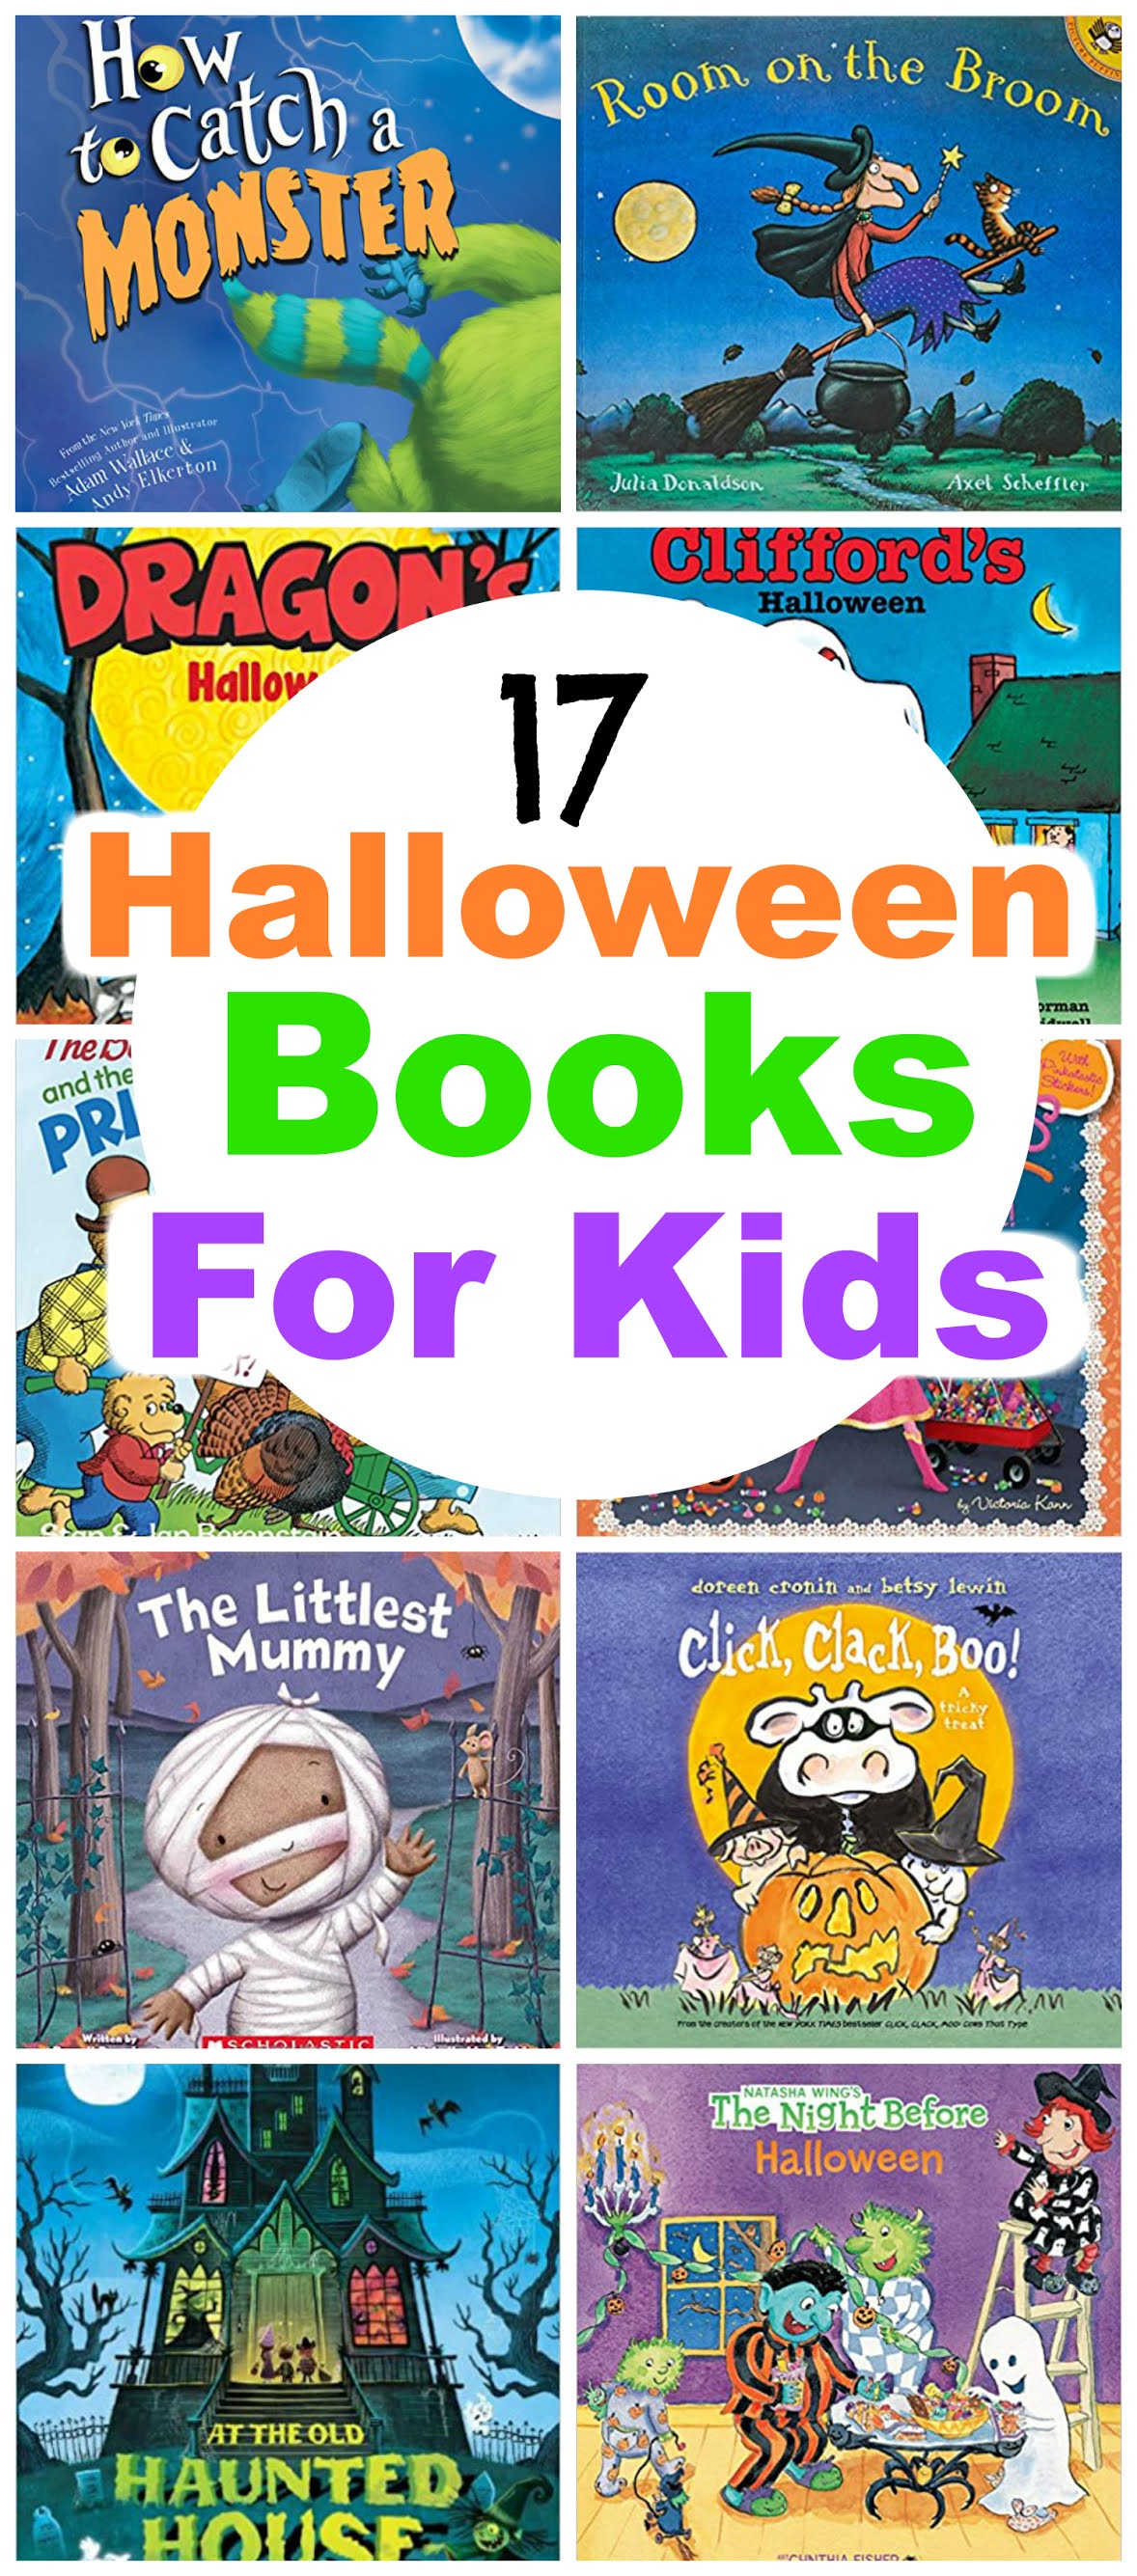 Halloween books for kindergarten. Halloween books for 8 year olds. Halloween books for 10 year olds. Halloween picture books. Juvenile halloween books. Halloween books for babies. Favorite halloween books. Halloween themed children's books. #books #reading #Learning #education #teacher #halloween #fall